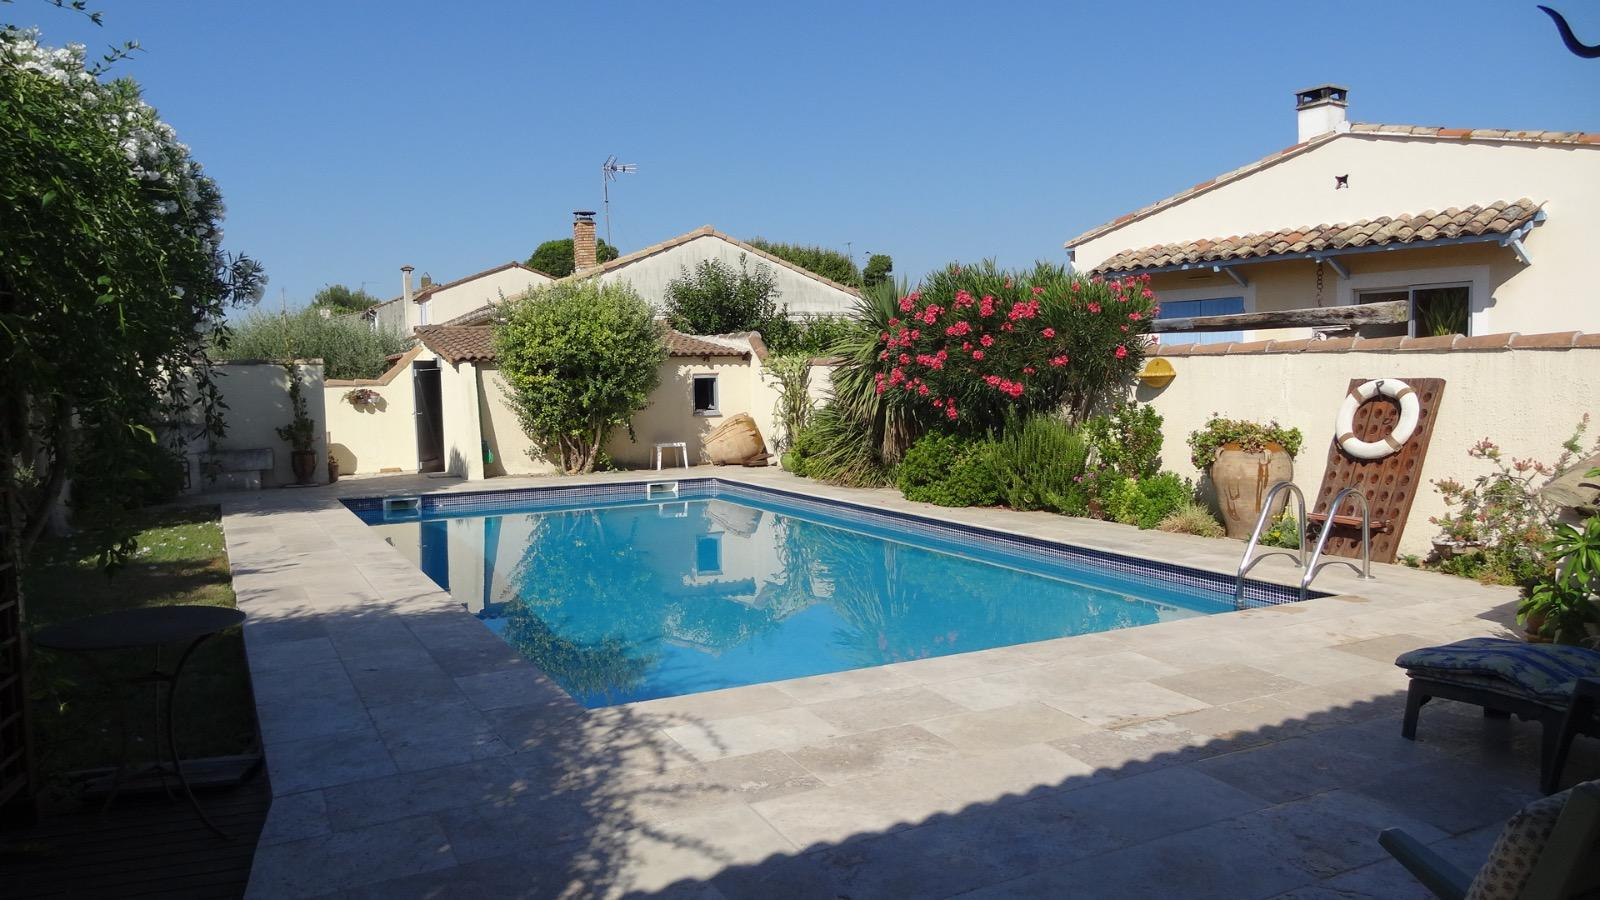 L 39 immobili re de la tour immobilier caissargues nimes for Piscine caissargues